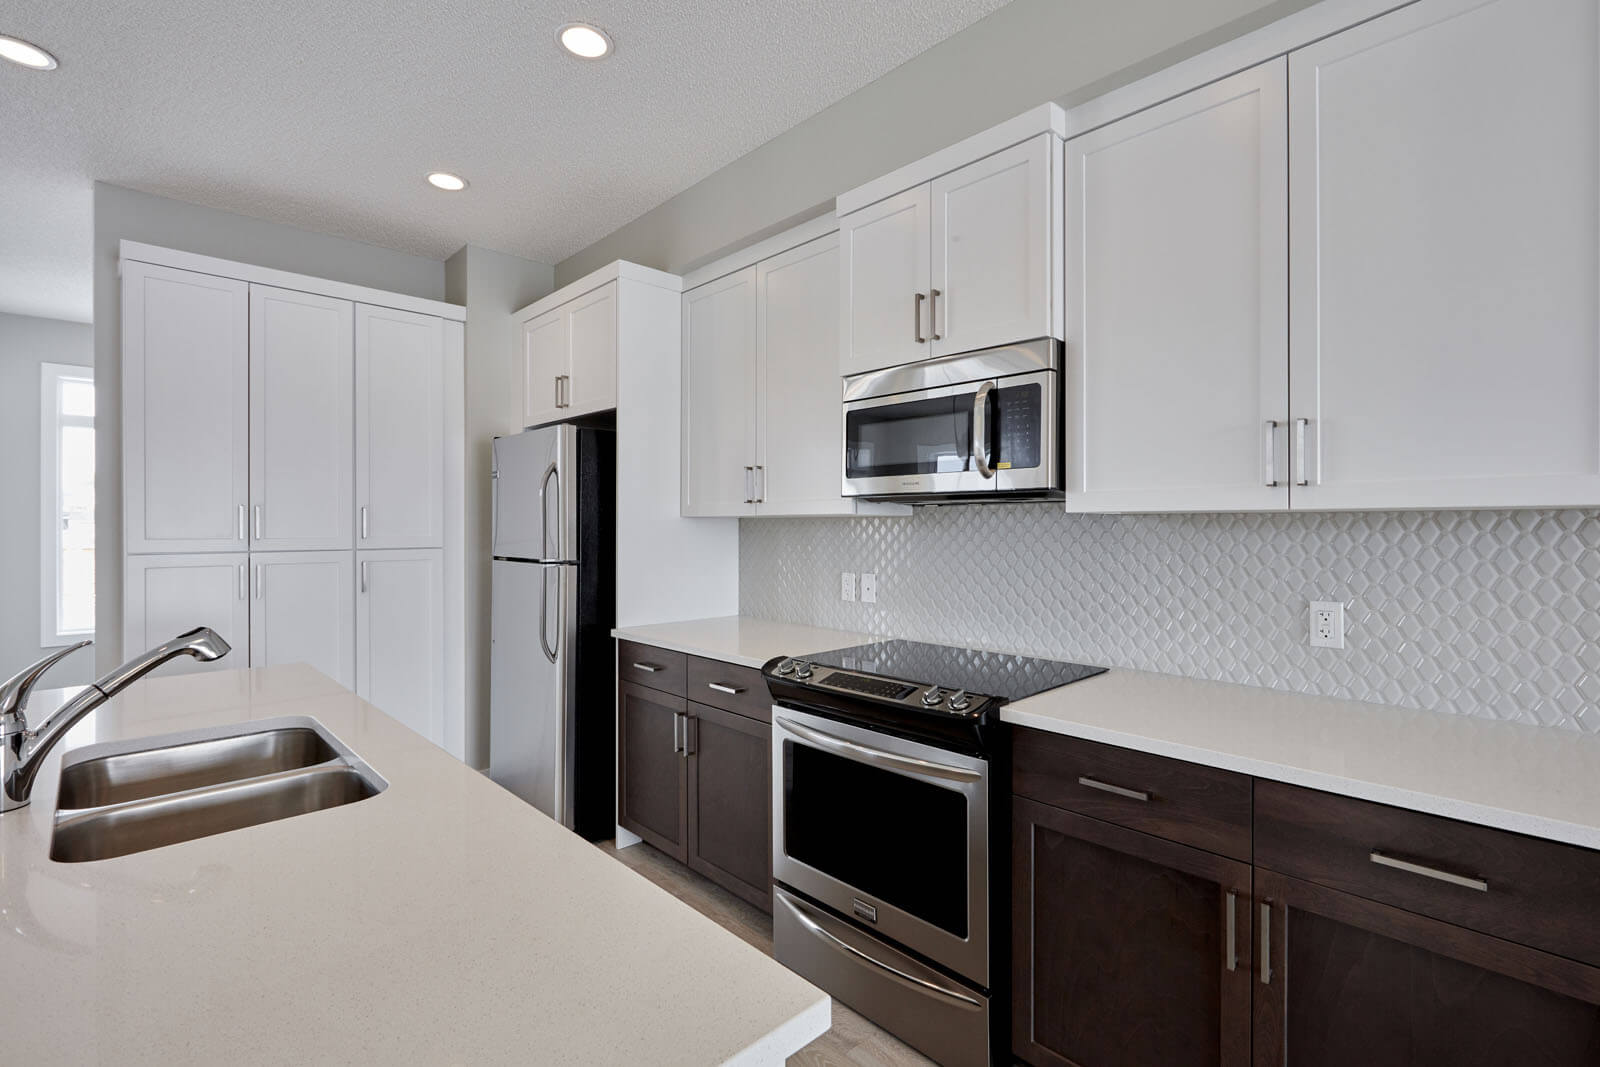 New Calgary Paired Home Quick Possession Indigo 2 in Walden, located at 32 Walgrove Drive SE Built By Cardel Homes